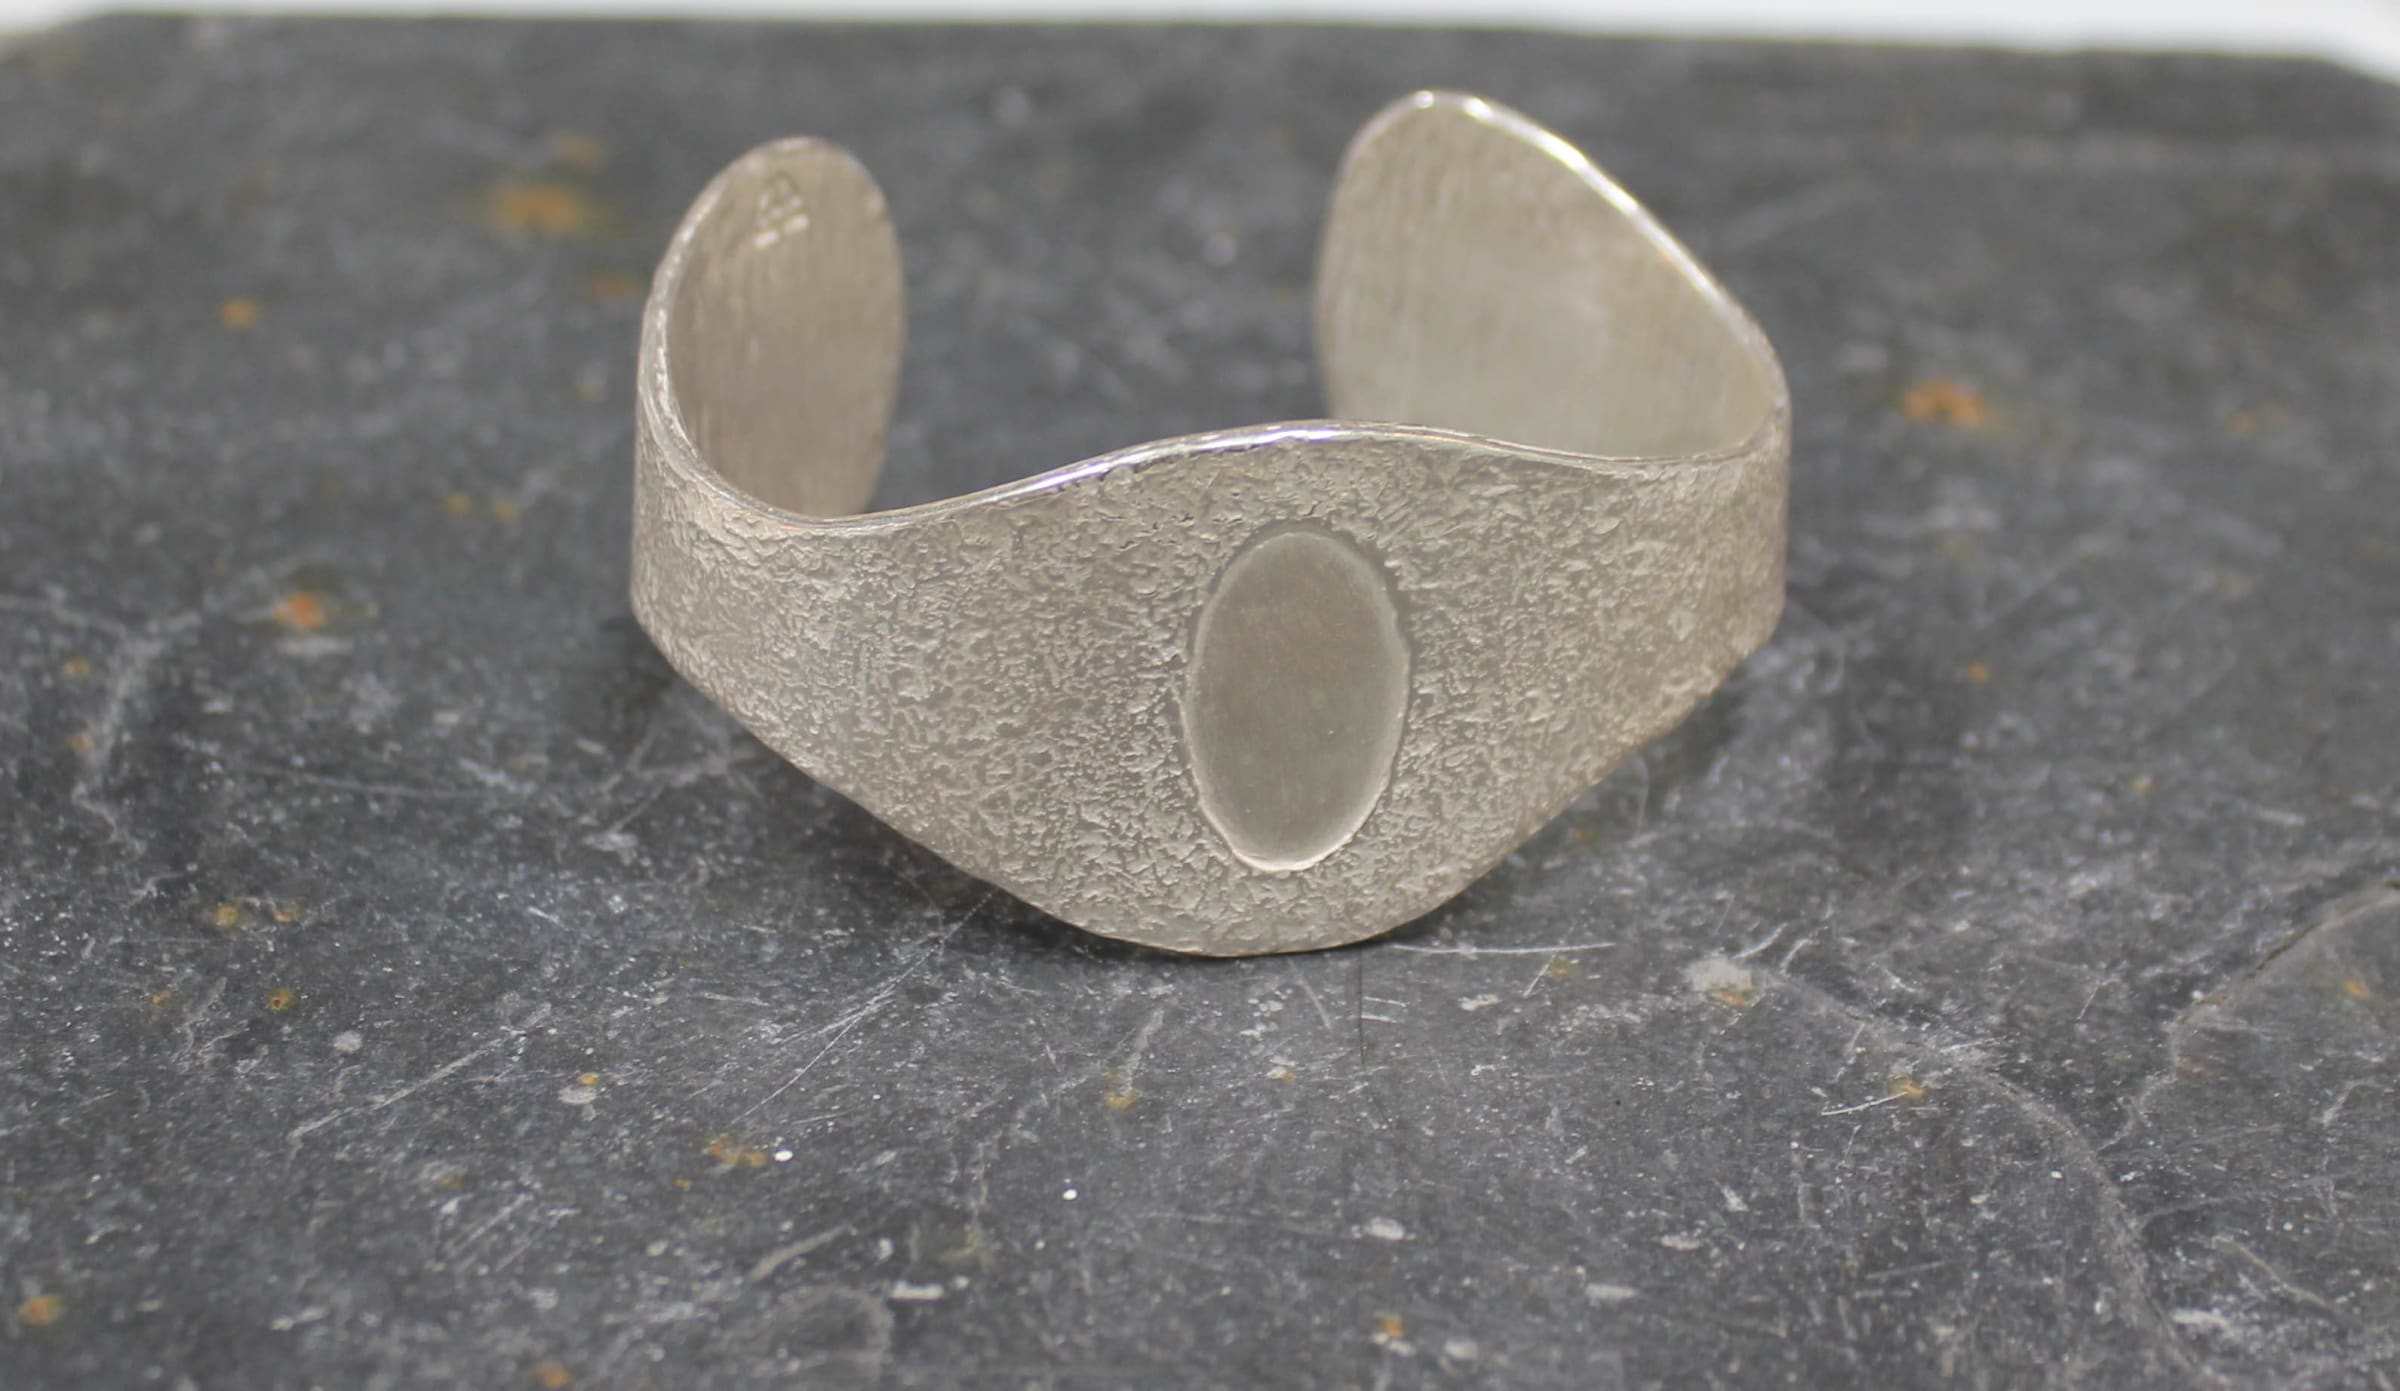 "<span class=""link fancybox-details-link""><a href=""/artists/186-helen-feiler/works/4630-helen-feiler-silver-bangle/"">View Detail Page</a></span><div class=""artist""><strong>Helen Feiler</strong></div> <div class=""title""><em>Silver Bangle </em></div> <div class=""medium"">Silver </div><div class=""copyright_line"">OwnArt: £ 25 x 10 Months, 0% APR</div>"